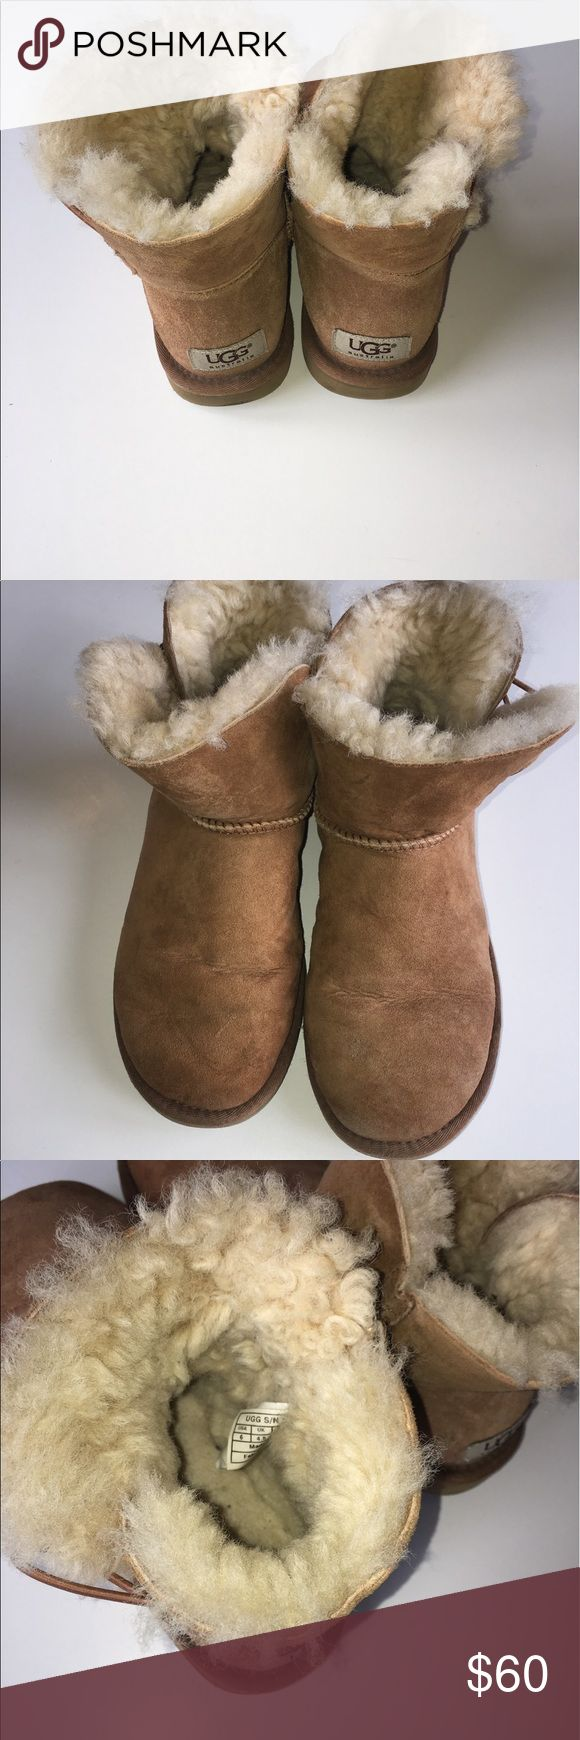 Women's Ugg Mini Bailey Button II Size 6 Women's Ugg Mini Bailey Button II in good condition. Not perfect but really good.. Size 6 UGG Shoes Ankle Boots & Booties